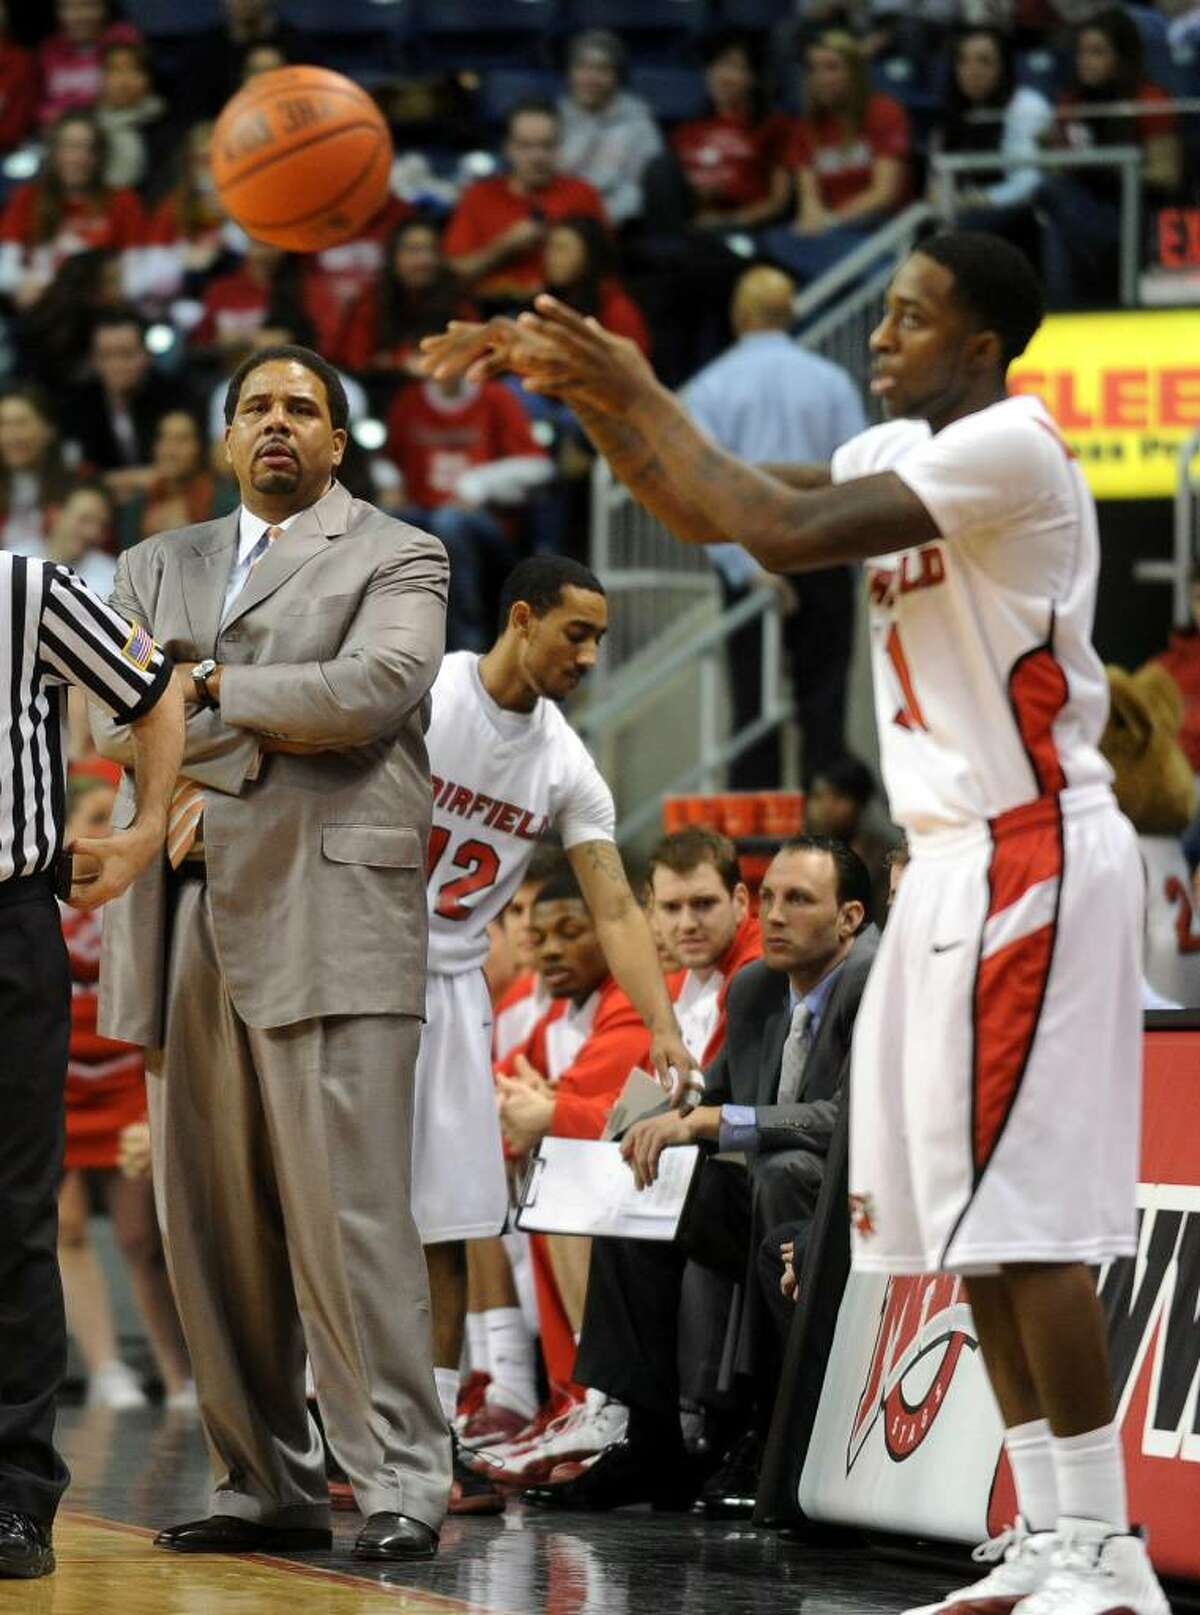 Fairfield University Head Coach Ed Cooley, during basketball action against Iona at the Arena at Harbor Yard in Bridgeport, Conn. on Friday Feb. 26, 2010.